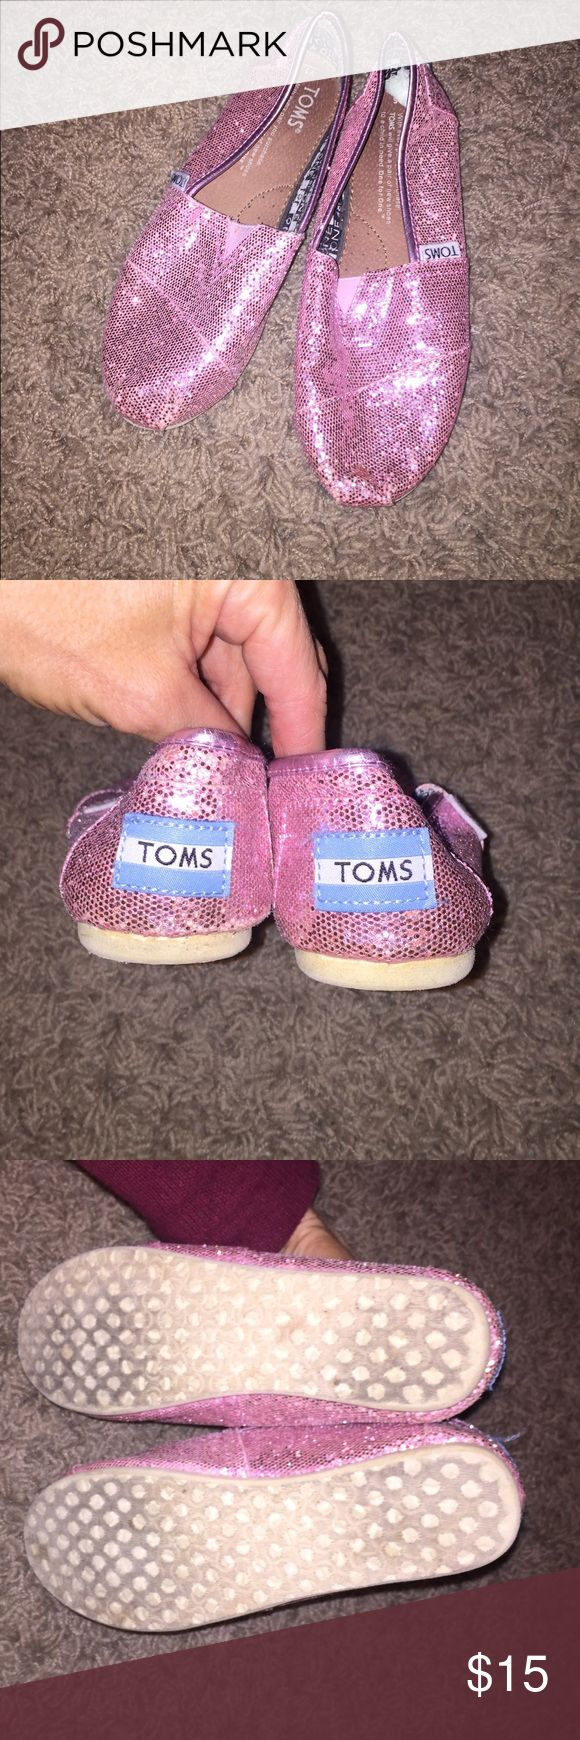 Authentic TOMS girls shoes- pink sparkle size 1.5 Authentic TOMS pink sparkly shoes-girls youth size 1.5- nice pre owned condition- normal wear from use. TOMS Shoes